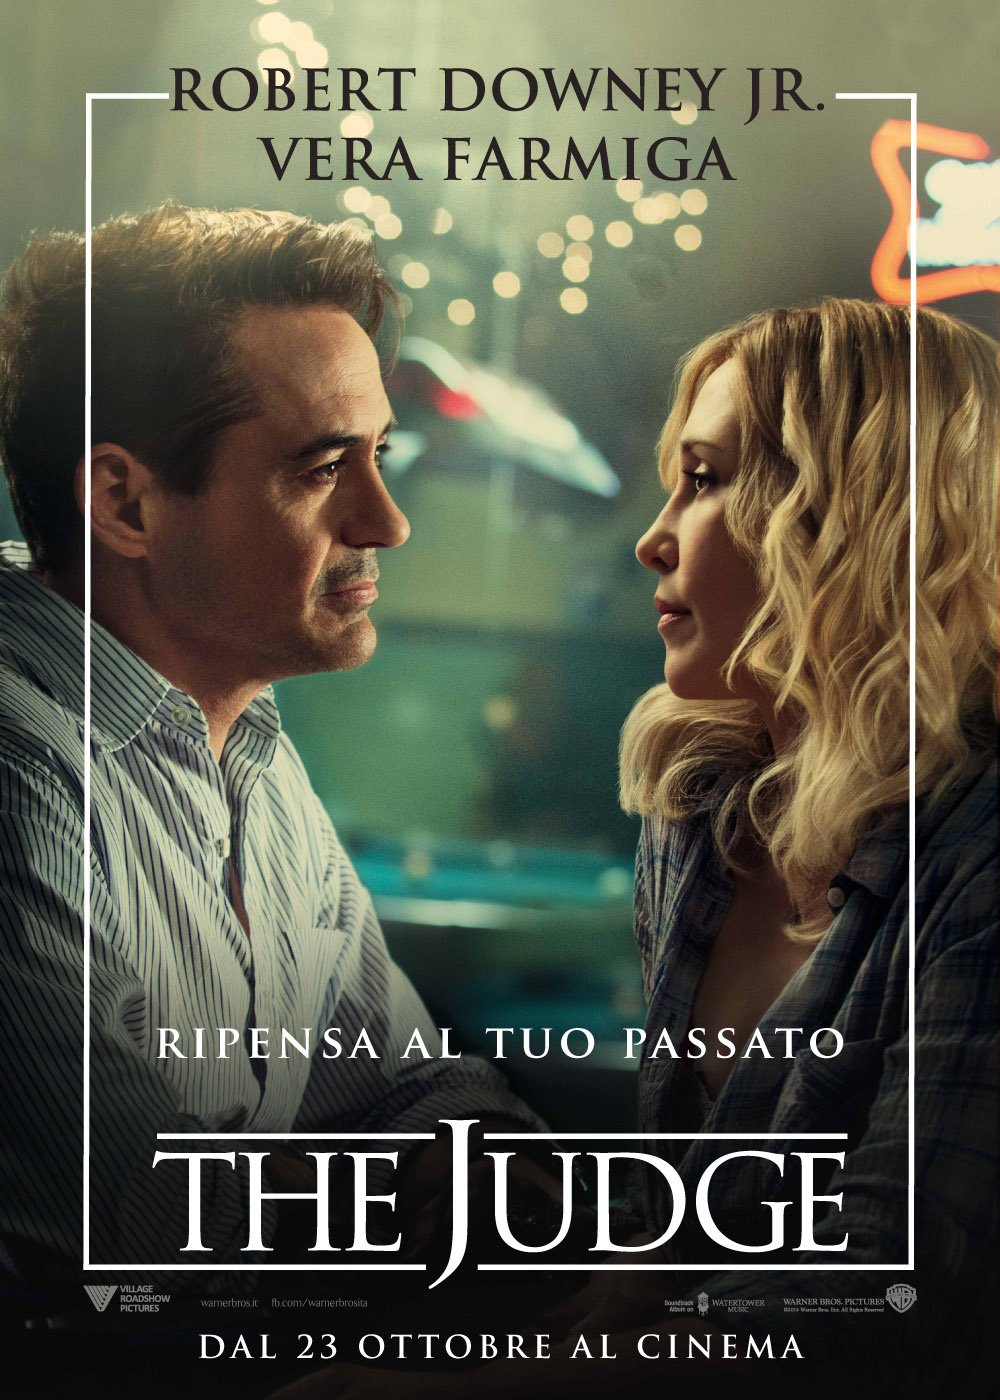 Character Poster di The Judge con Robert Downey jr. e Vera Farmiga